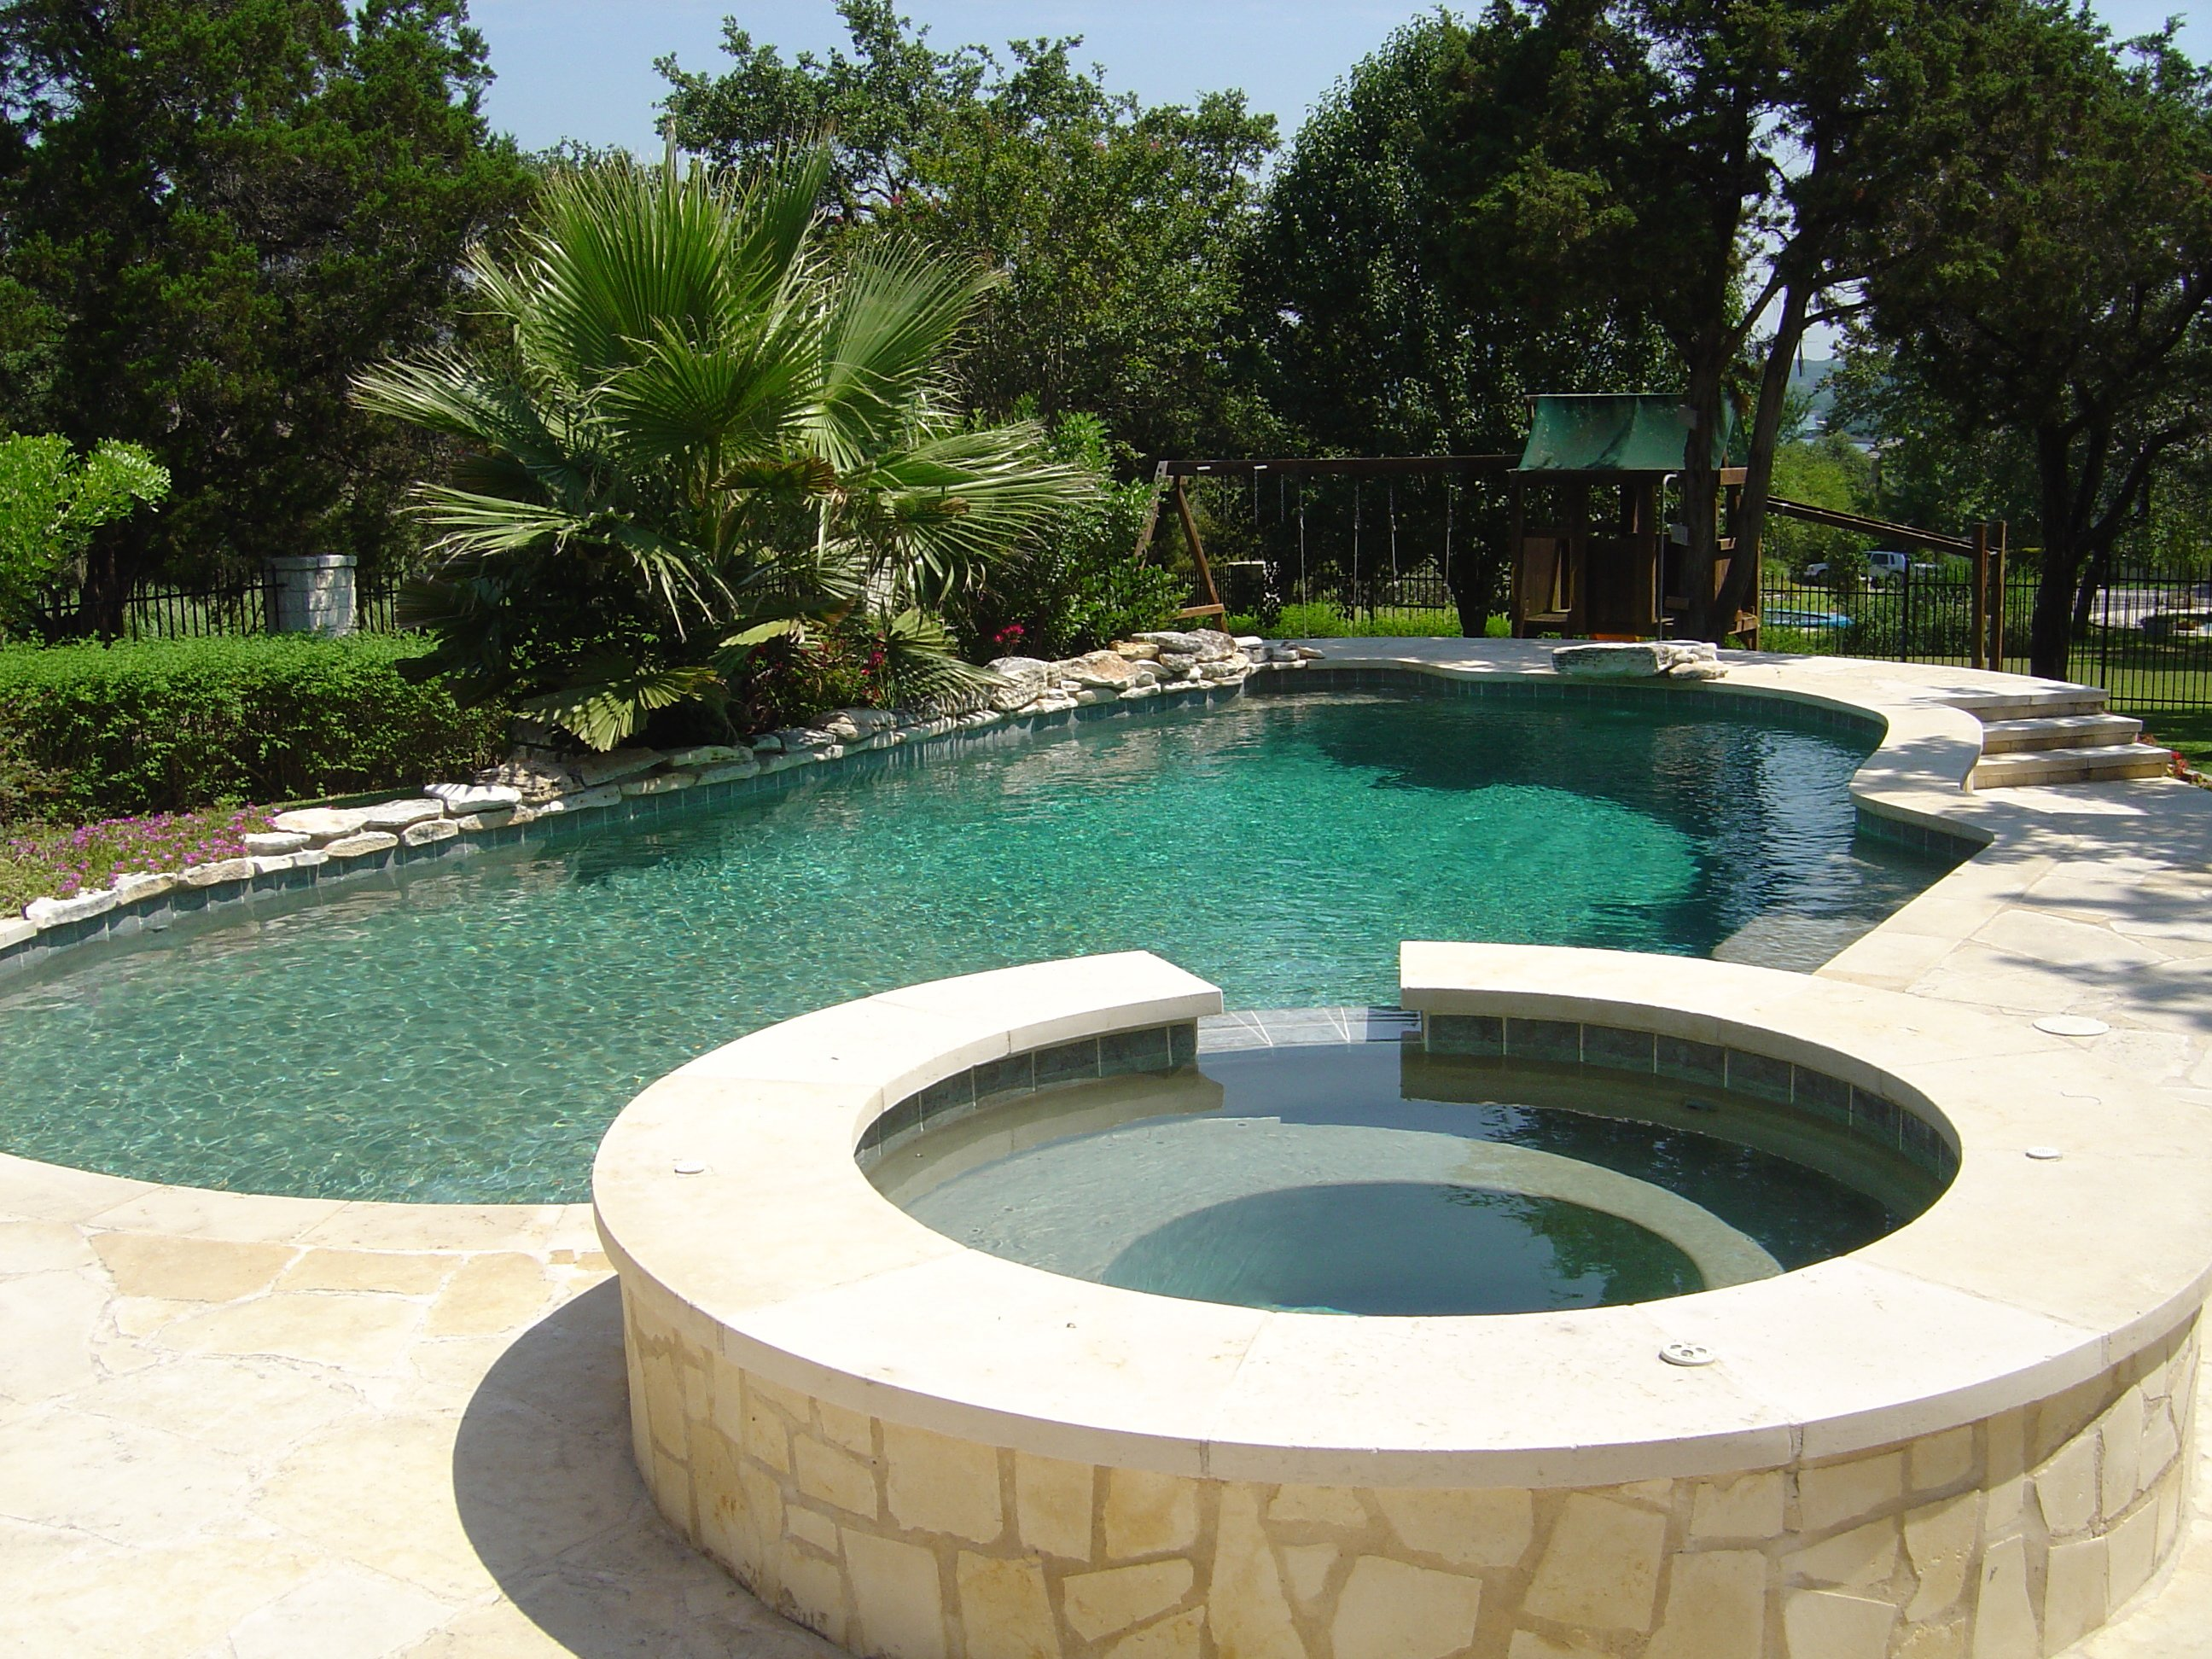 Pool and Spa with Limestone Deck